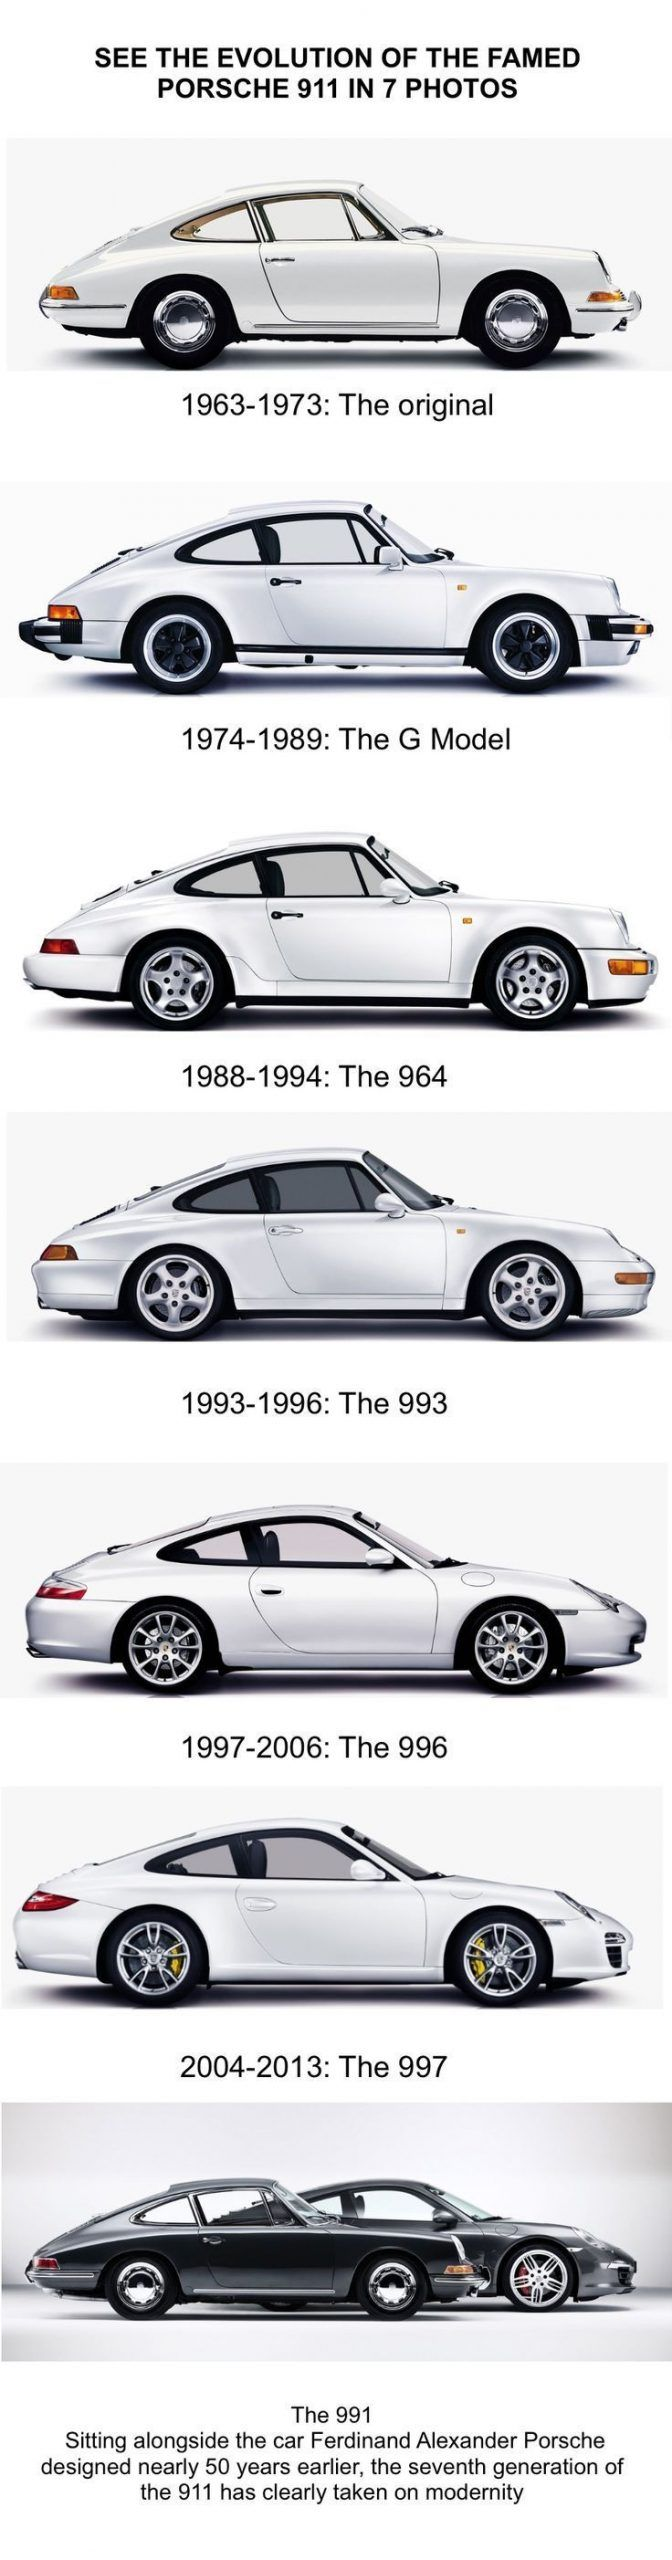 See The Evolution Of The Famous Porsche 911 In 7 Photos Original Article Car Interior Design See The Evolution Of The Porsche 911 Porsche Cars Porsche